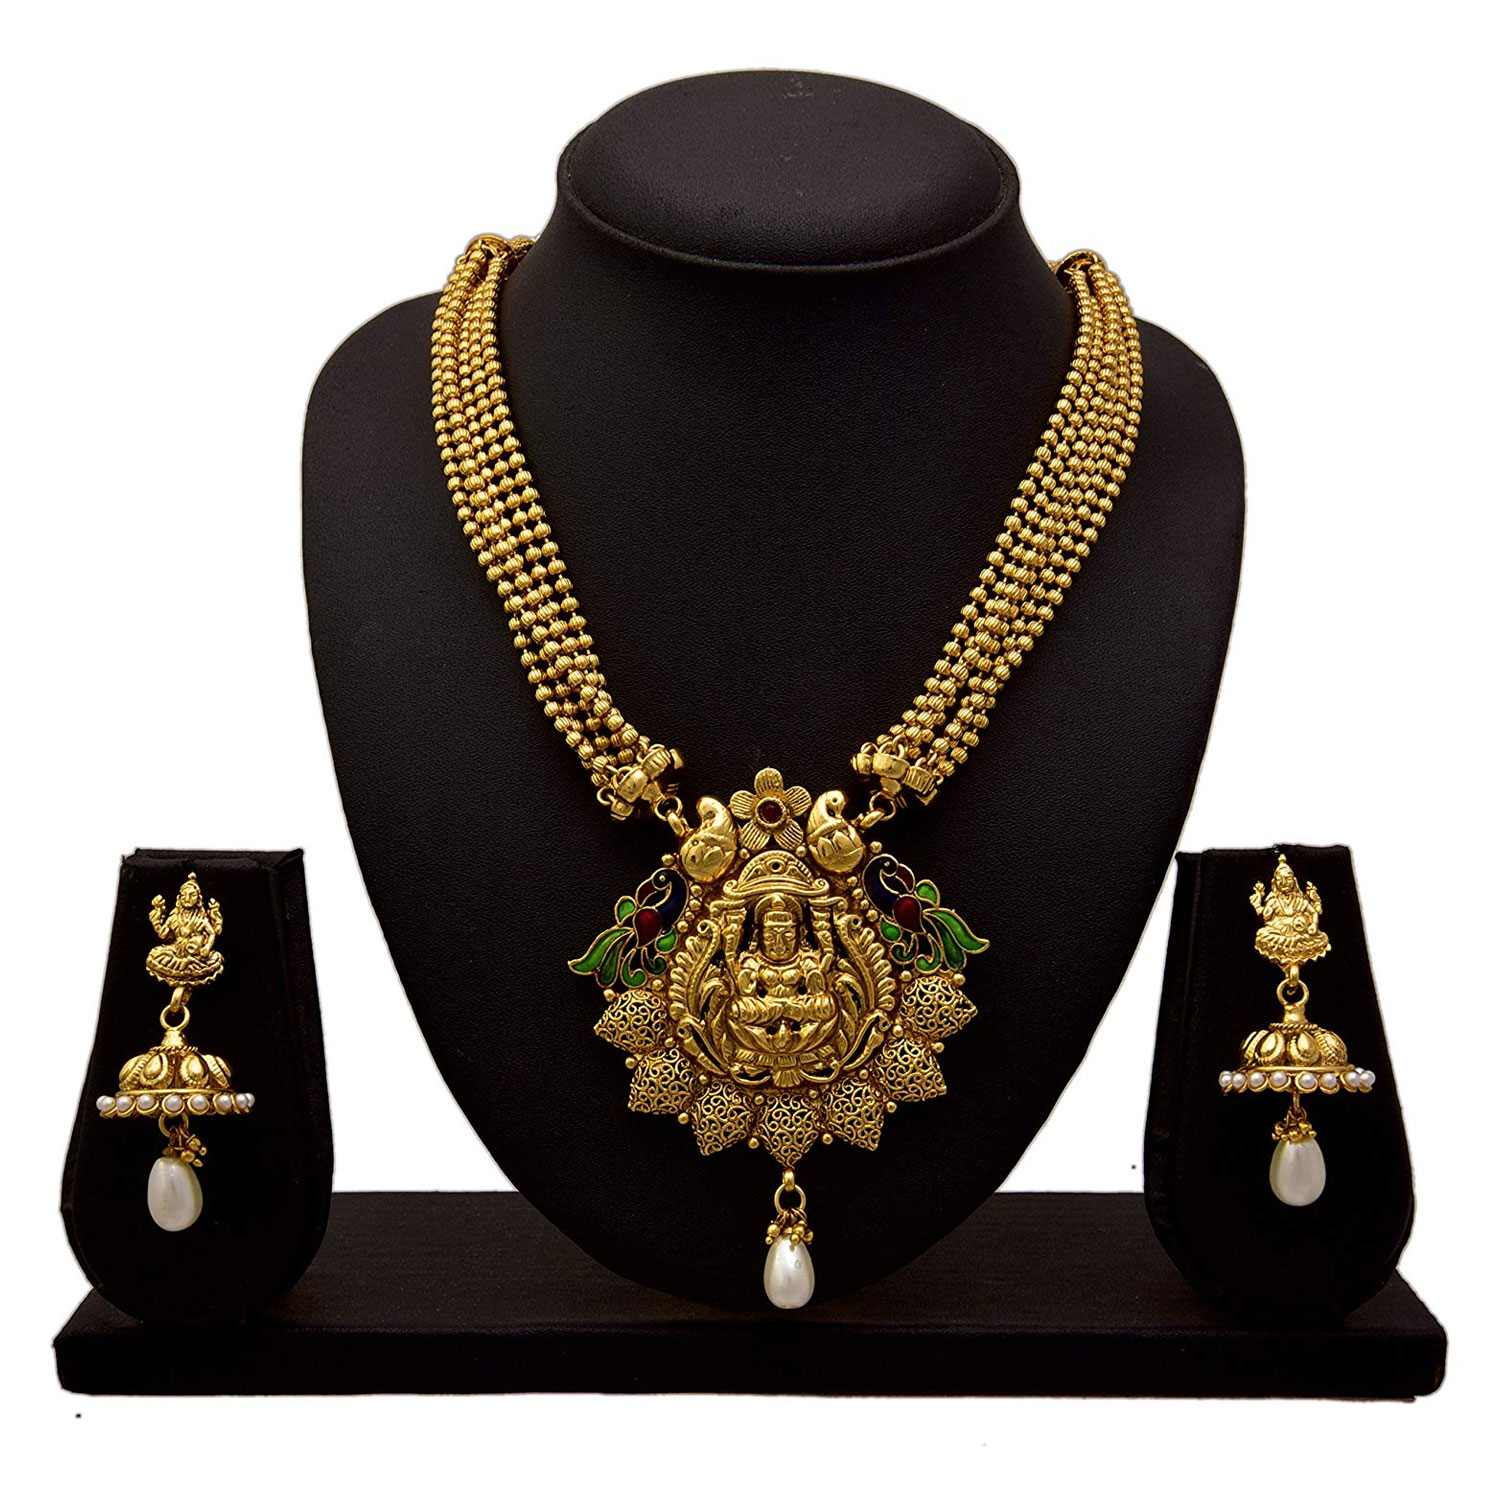 JFL - Traditional Ethnic One Gram Gold Plated Temple Laxmi Goddess Pearl & Stone Peacock Designer Necklace Set with Earring for Women & Girls.